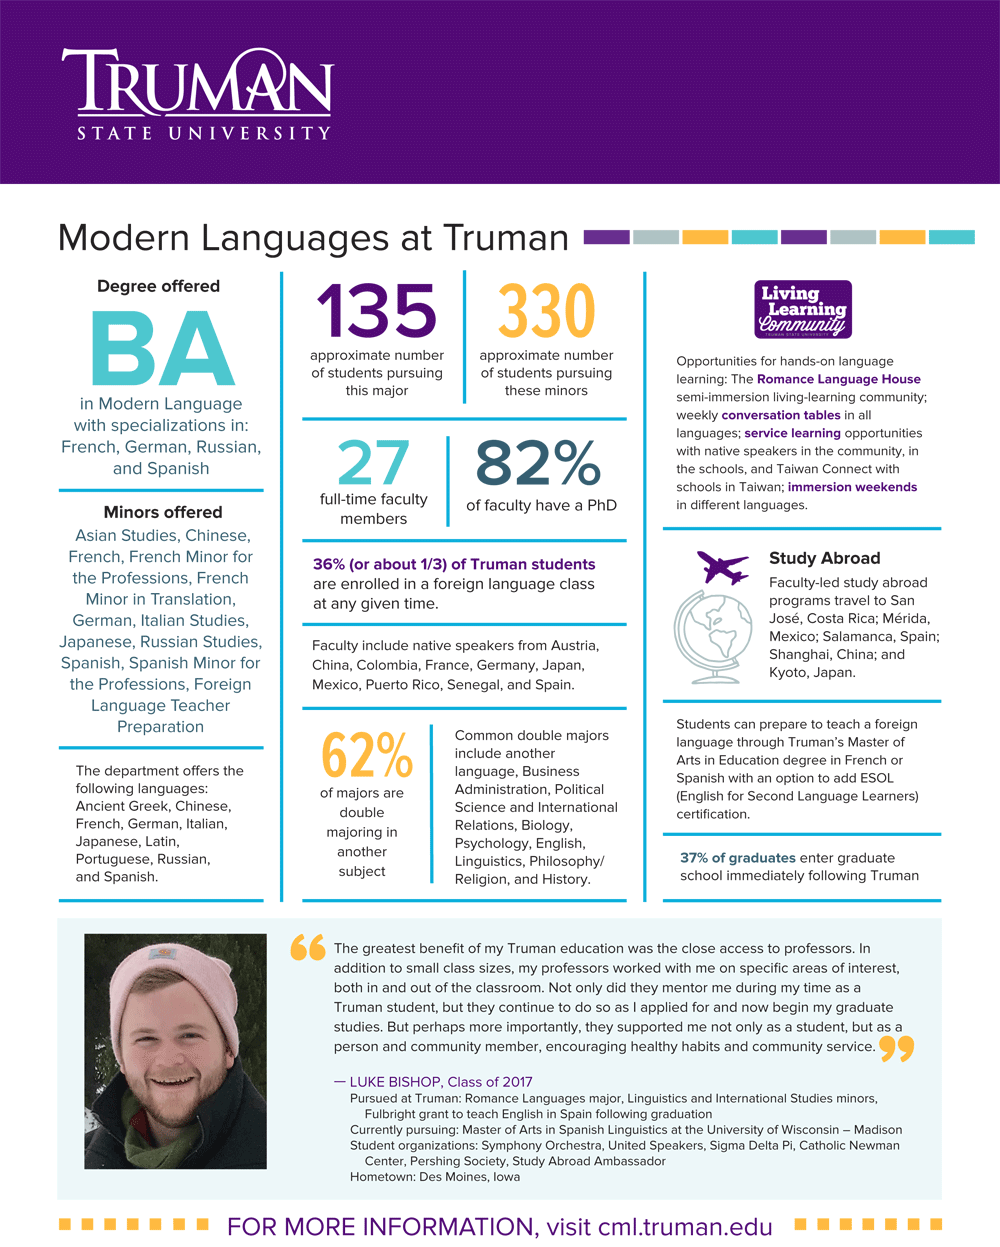 Modern Languages Quick Facts